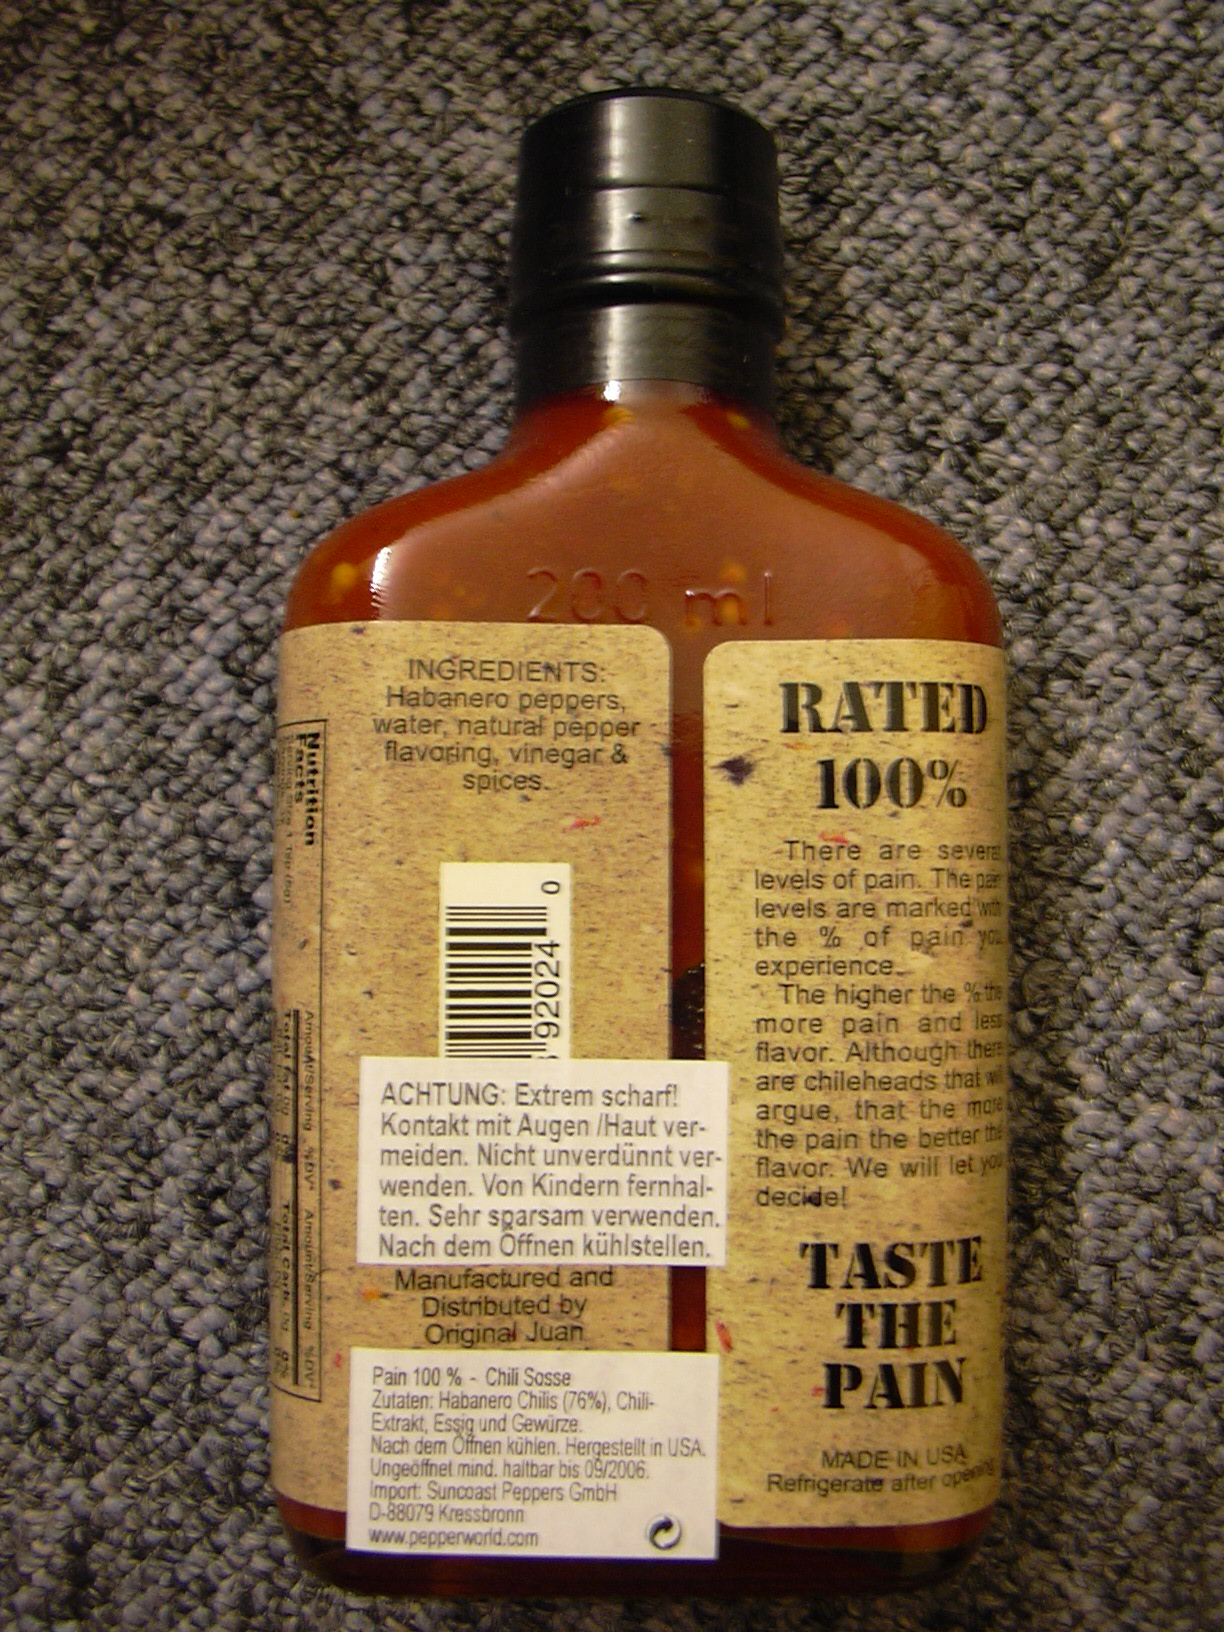 http://upload.wikimedia.org/wikipedia/commons/6/65/Hot_Sauce-Pain_100_percent-back.jpg